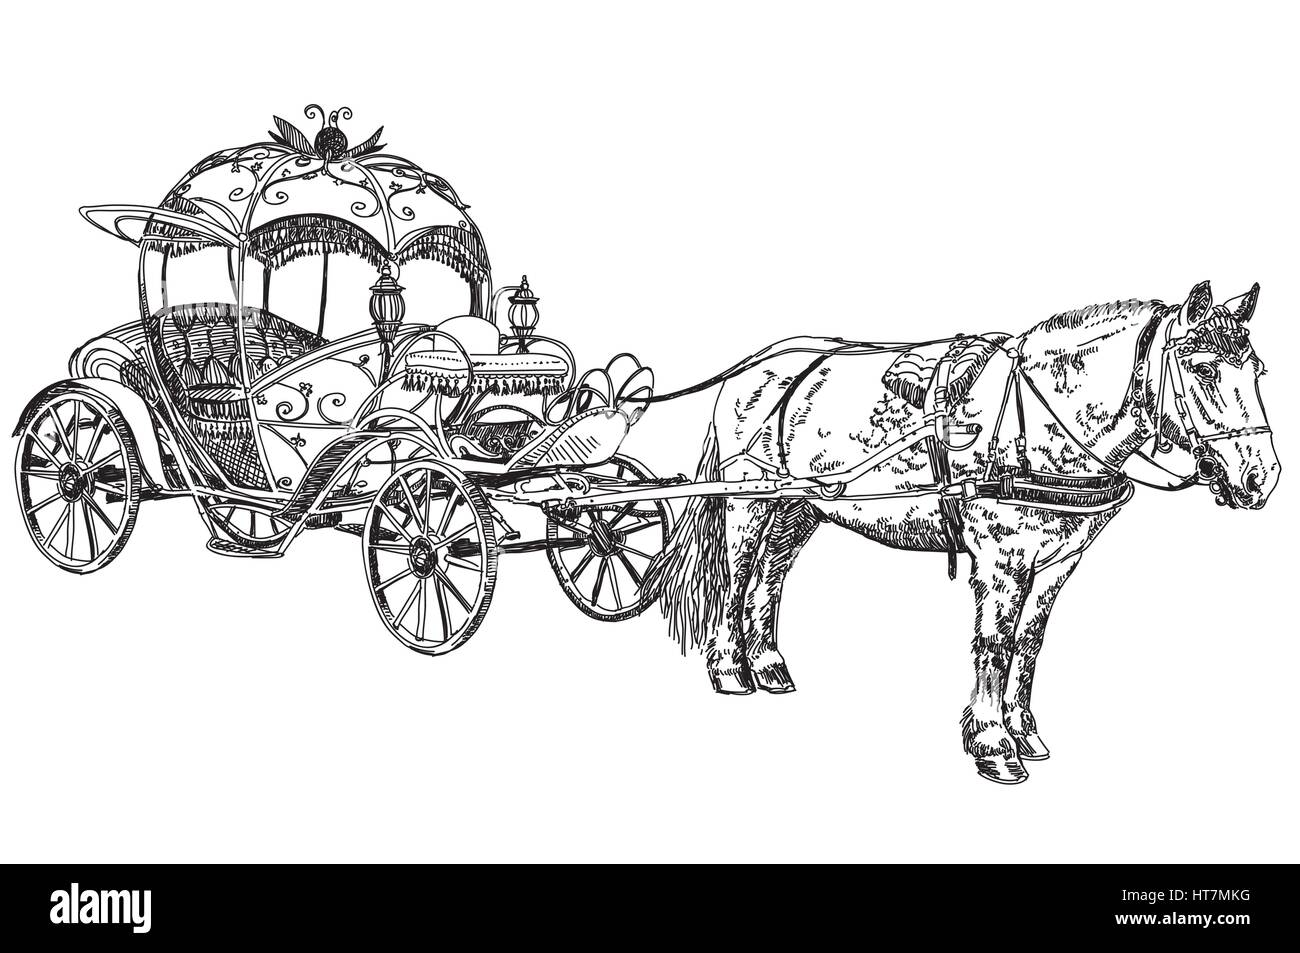 Pencil Drawing Beautiful Carriage With Horse Vector Illustratoin Stock Vector Image Art Alamy